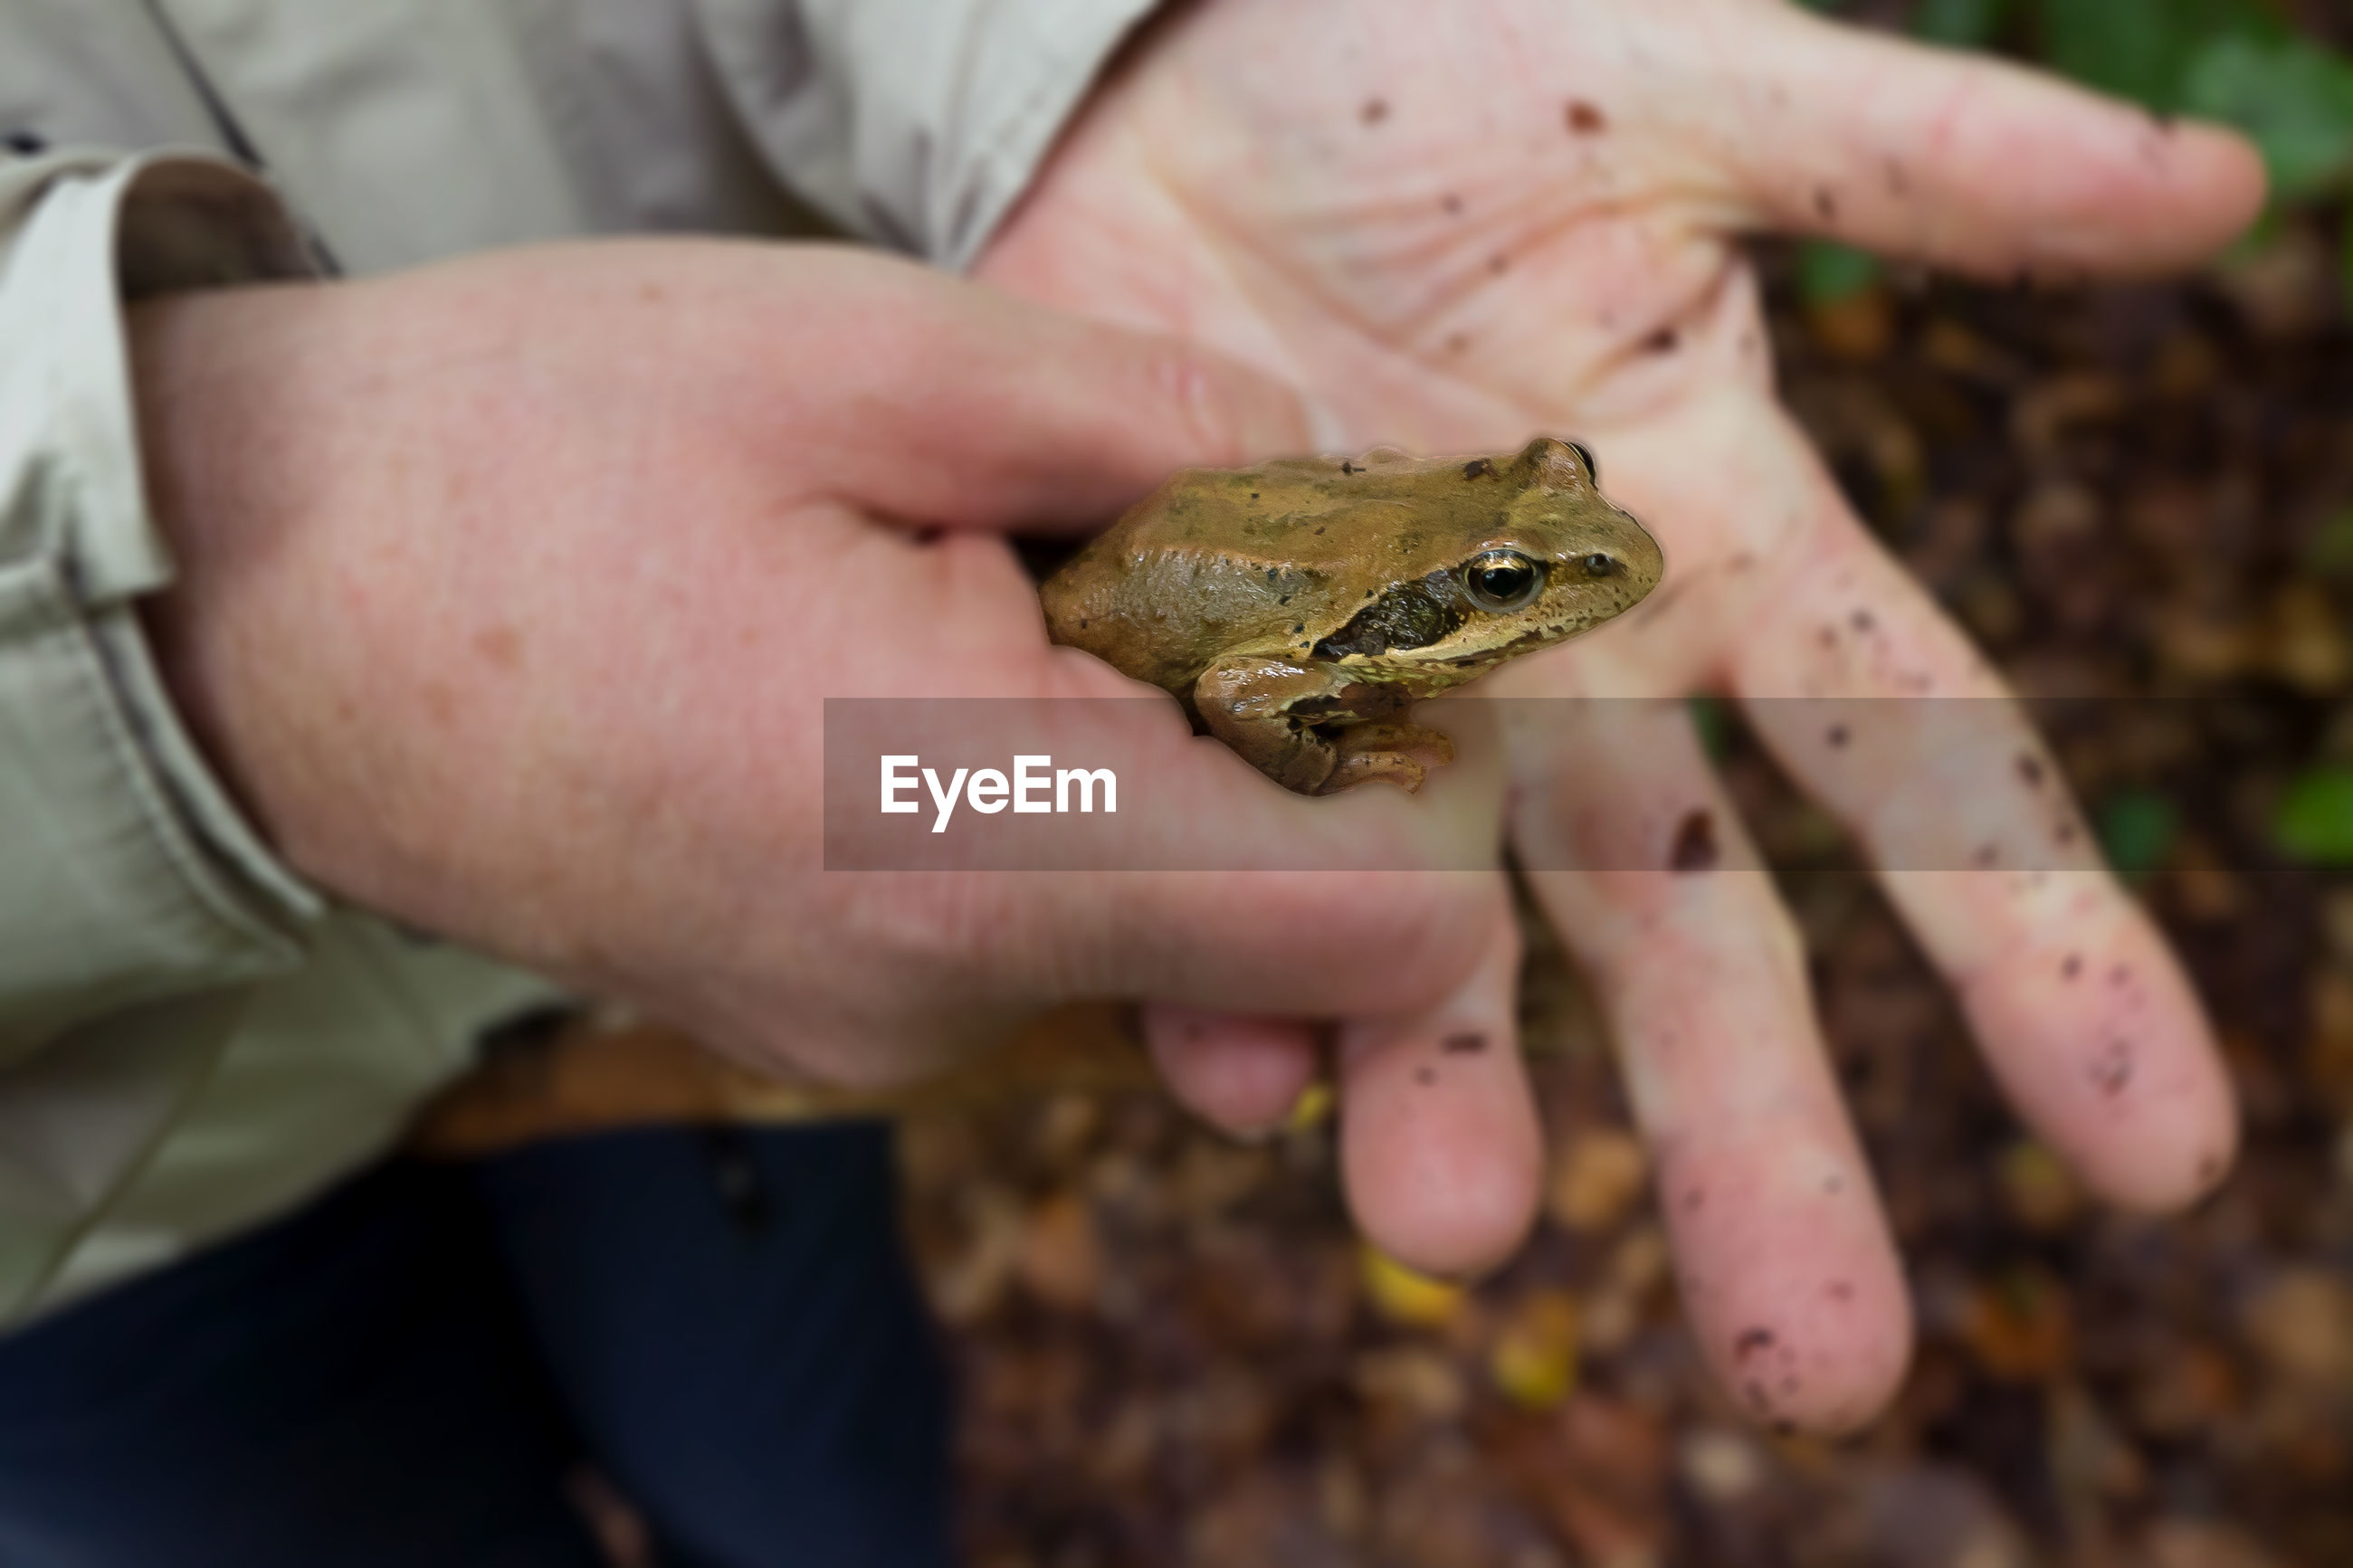 CLOSE-UP OF FROG ON HUMAN HAND HOLDING LEAF